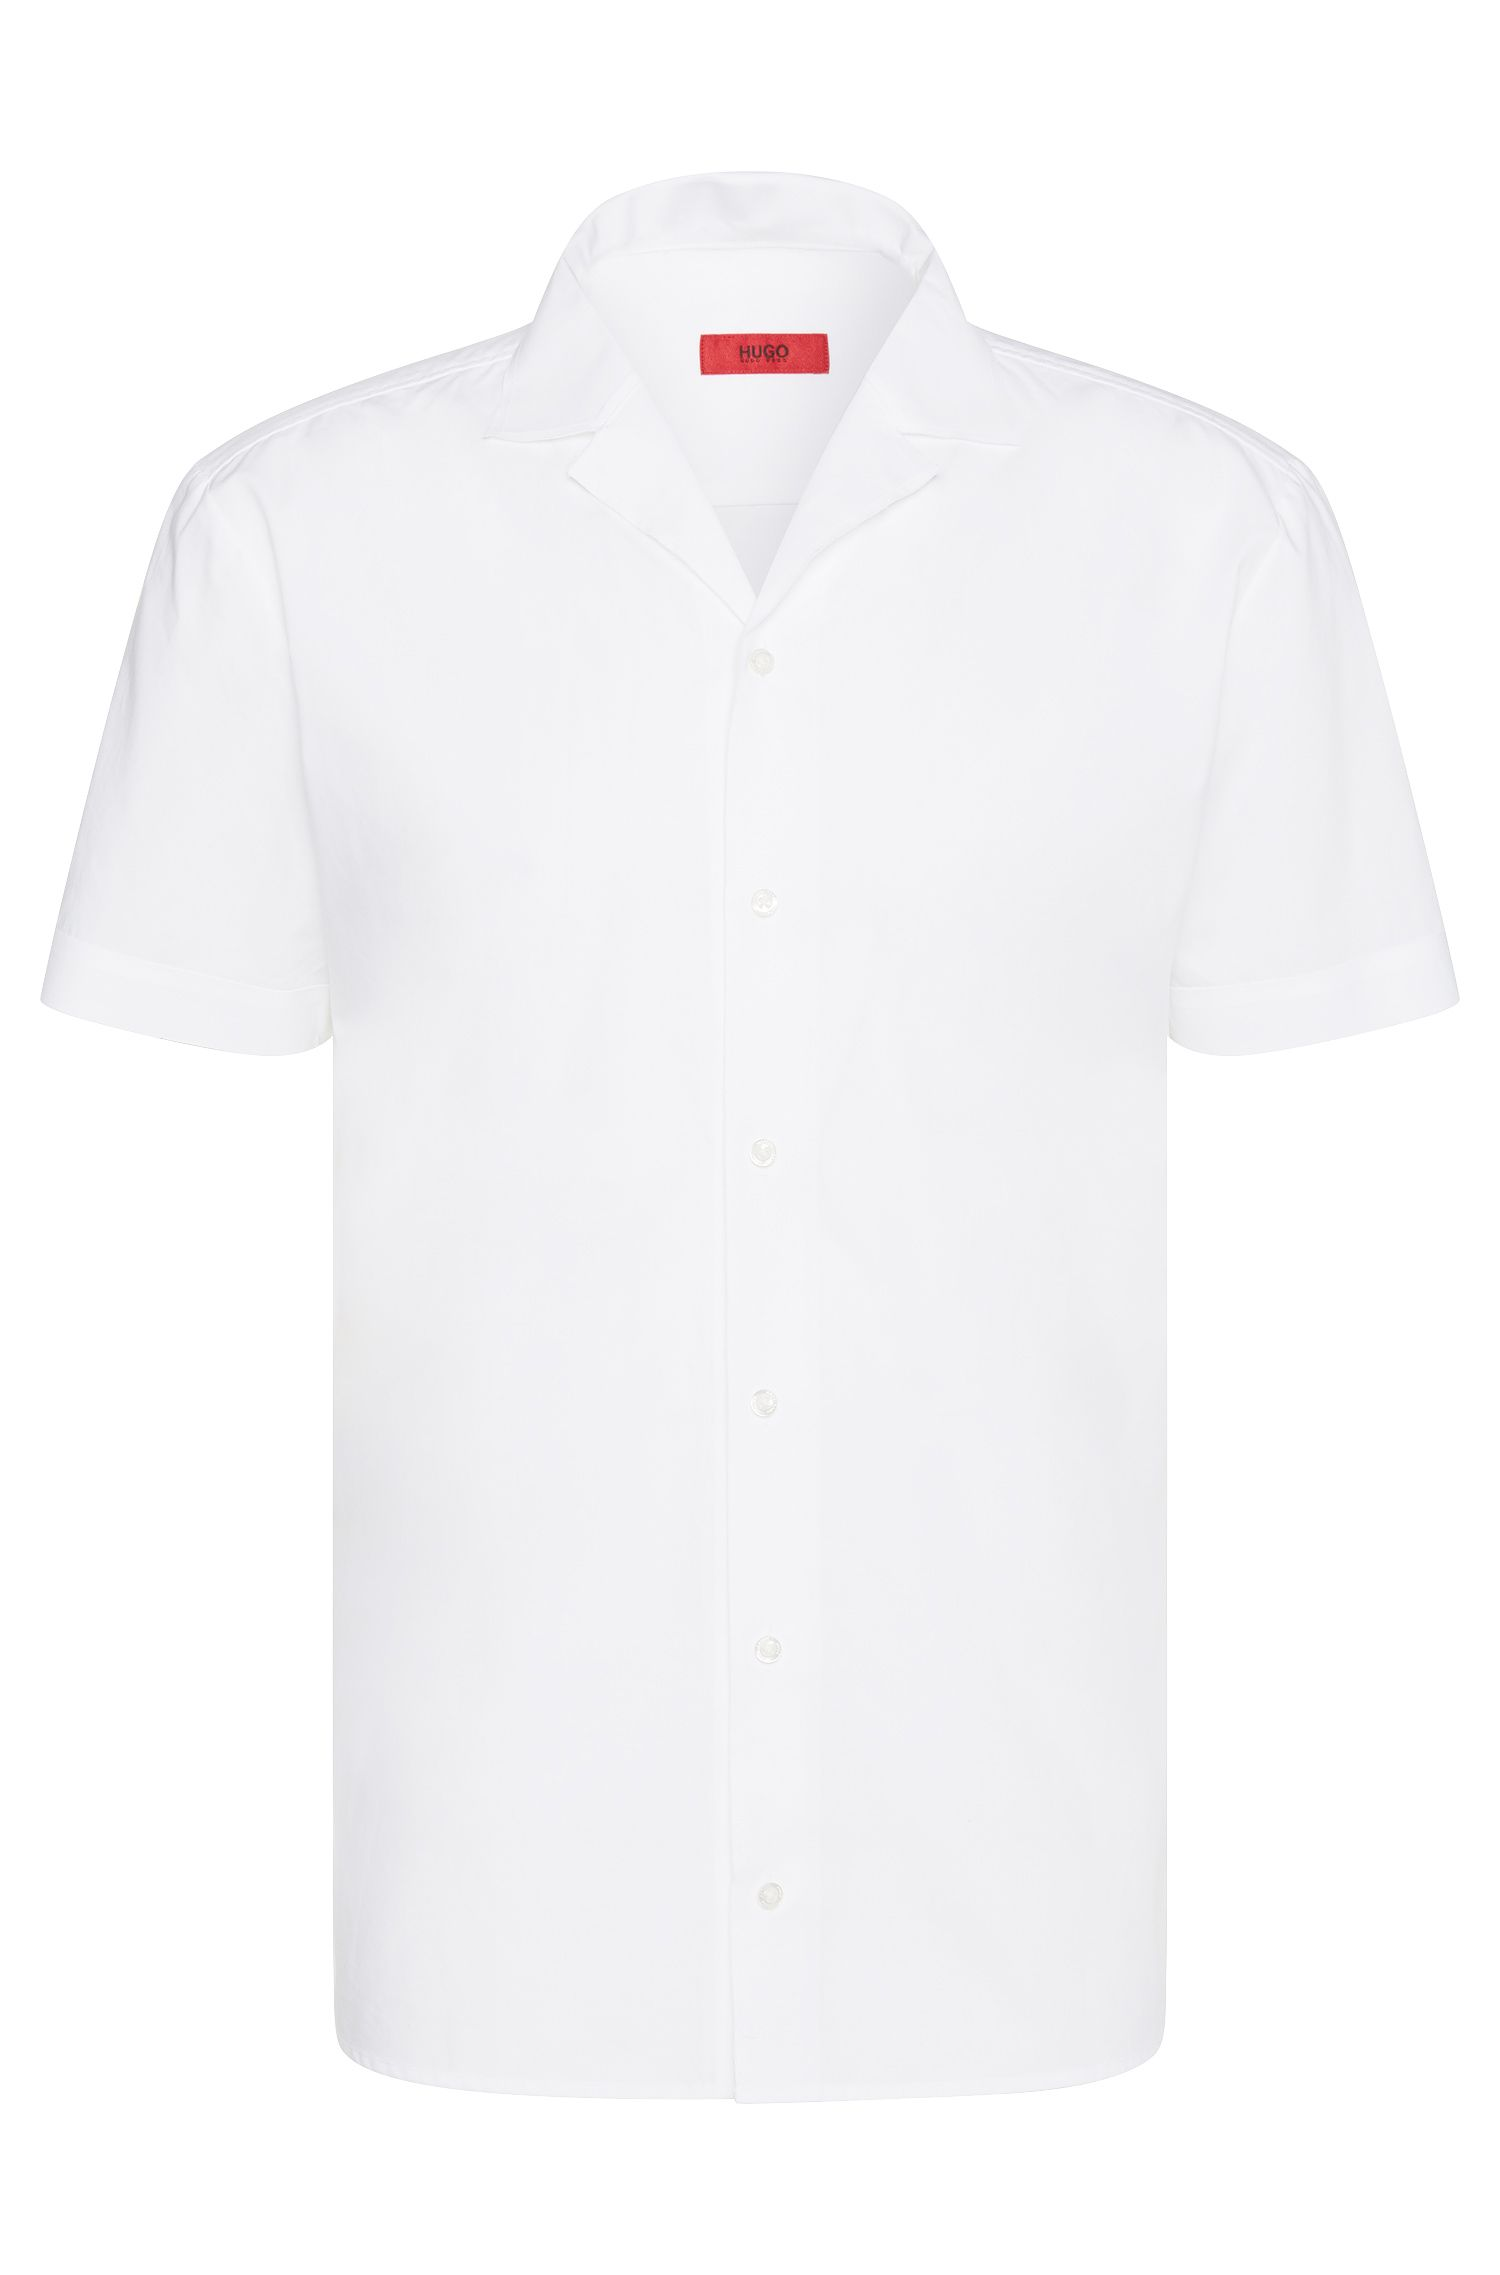 'Eepa' | Relaxed Fit, Cotton Button Down Shirt